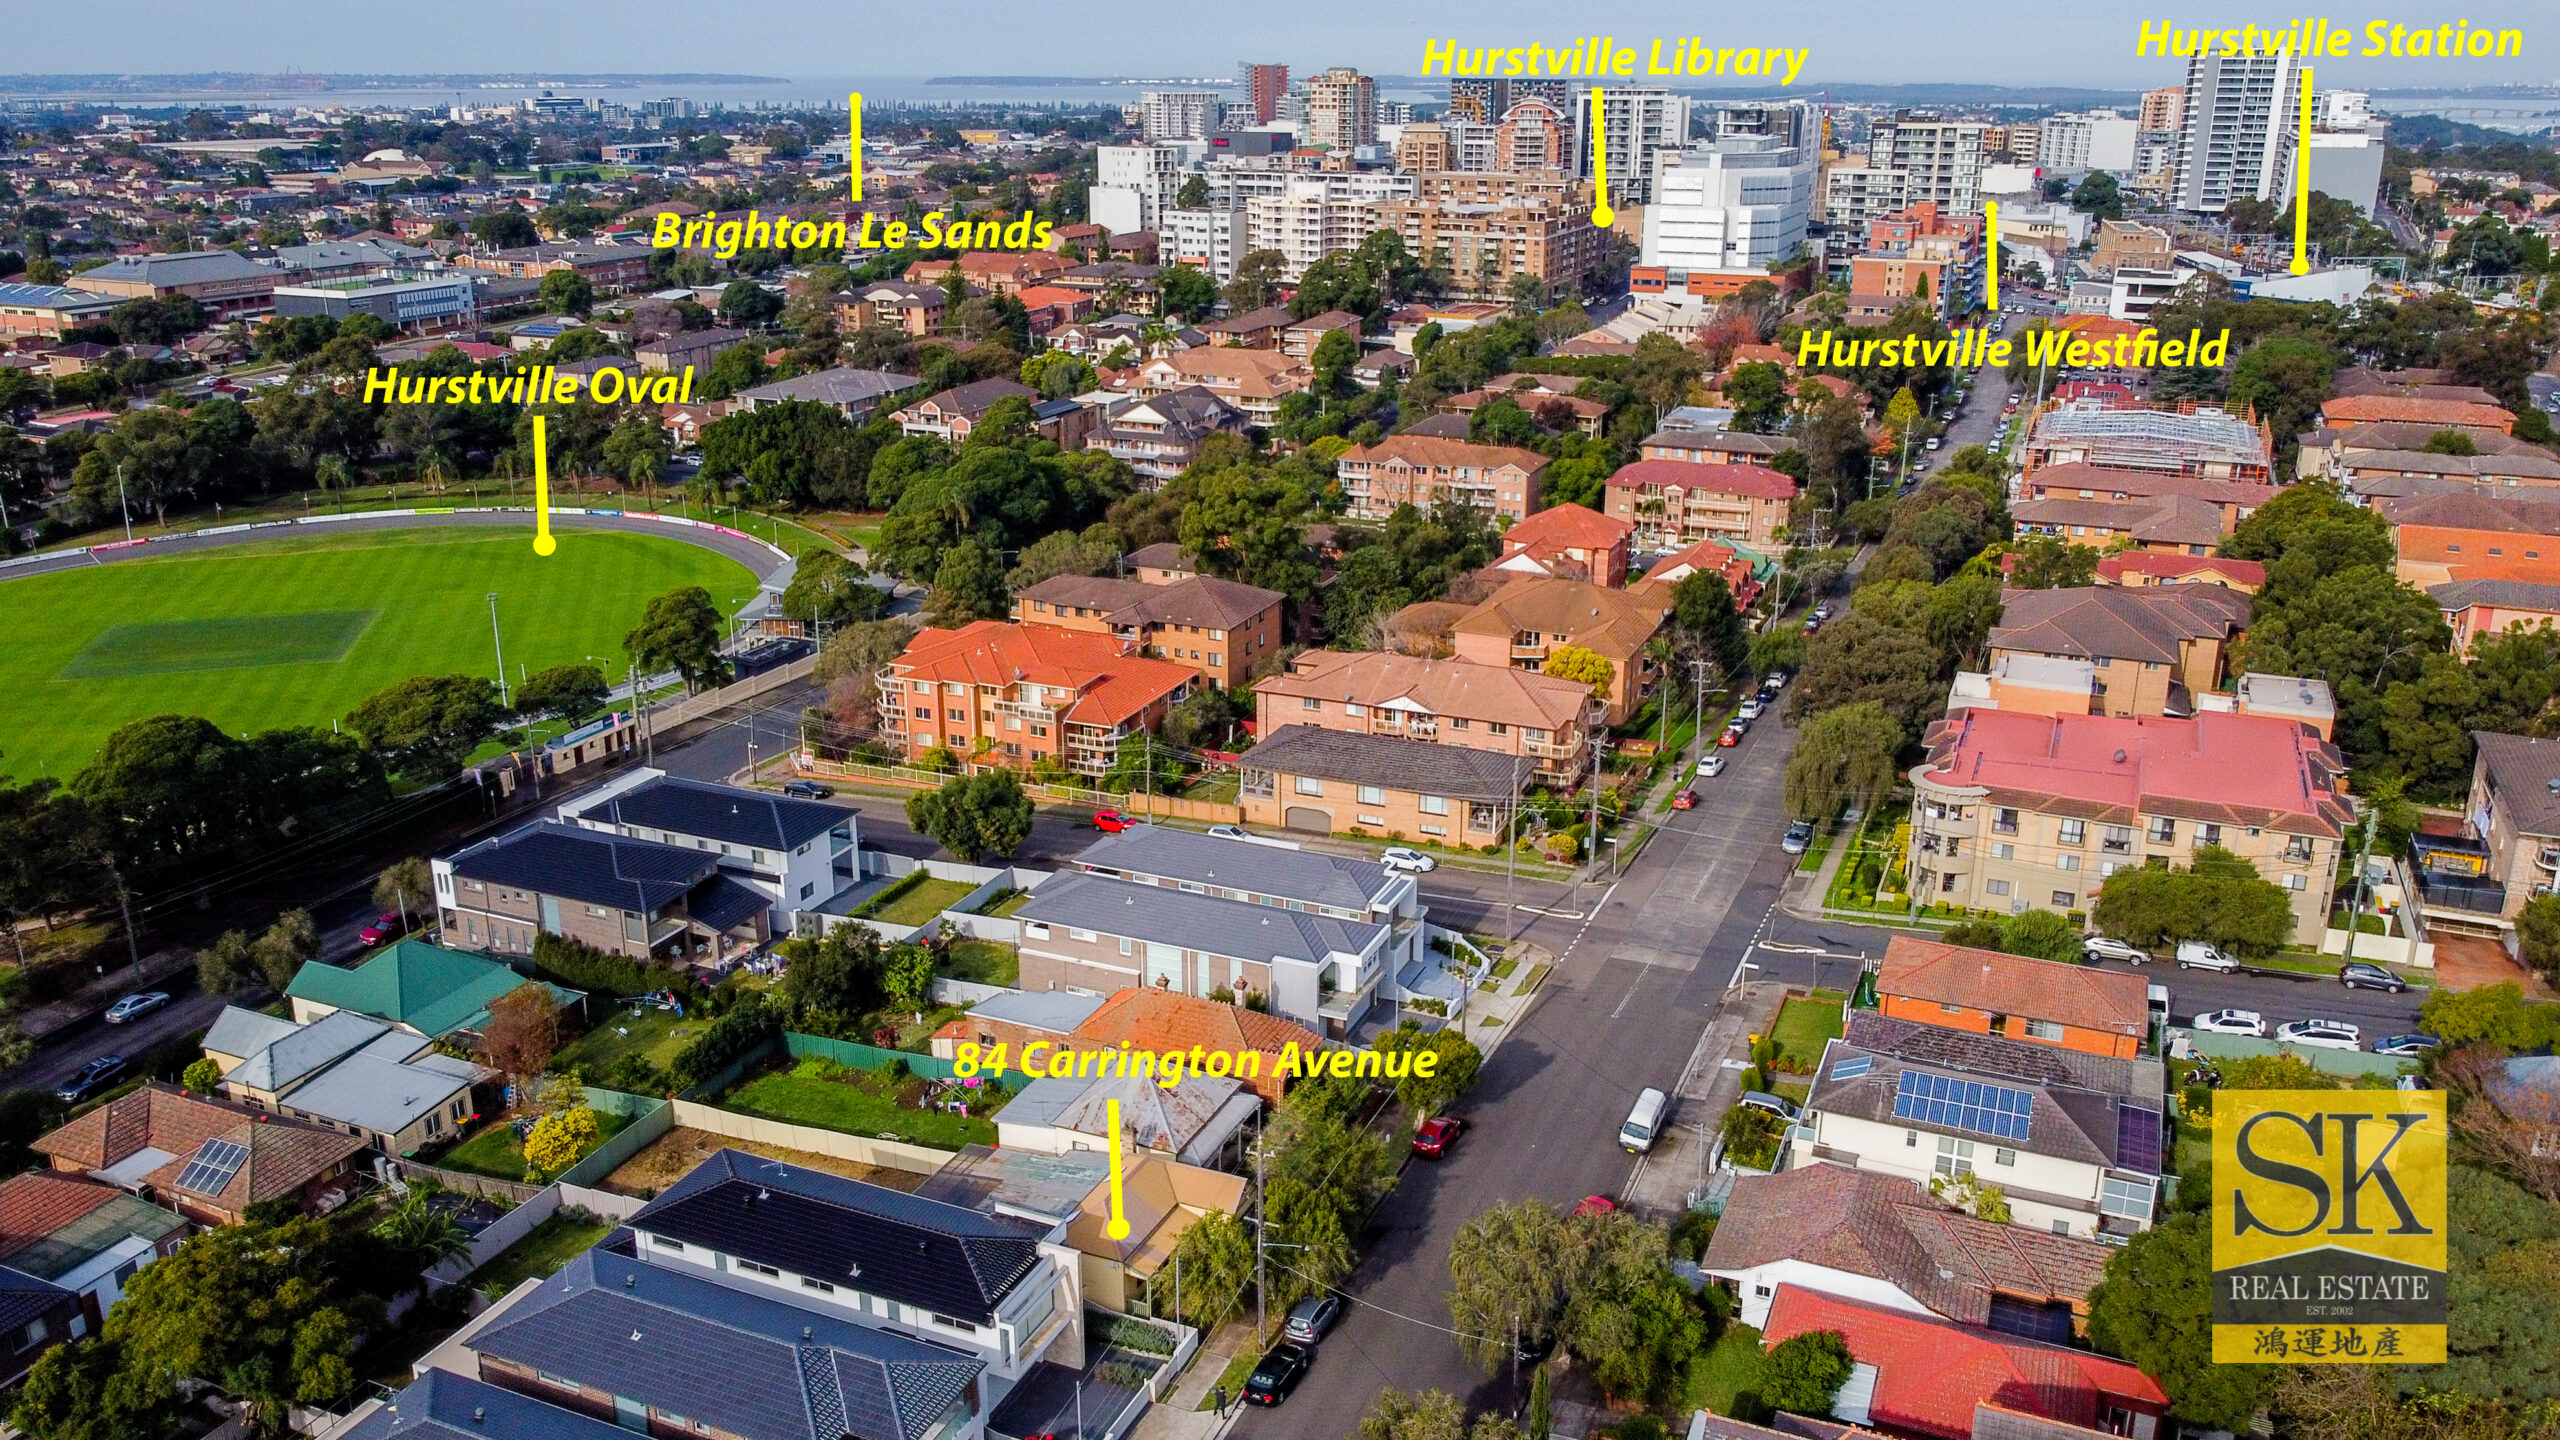 (SOLD) OVER RESERVE PRICE $55,000  | Must-see property potential for development in a prime location to Hurstville CBD